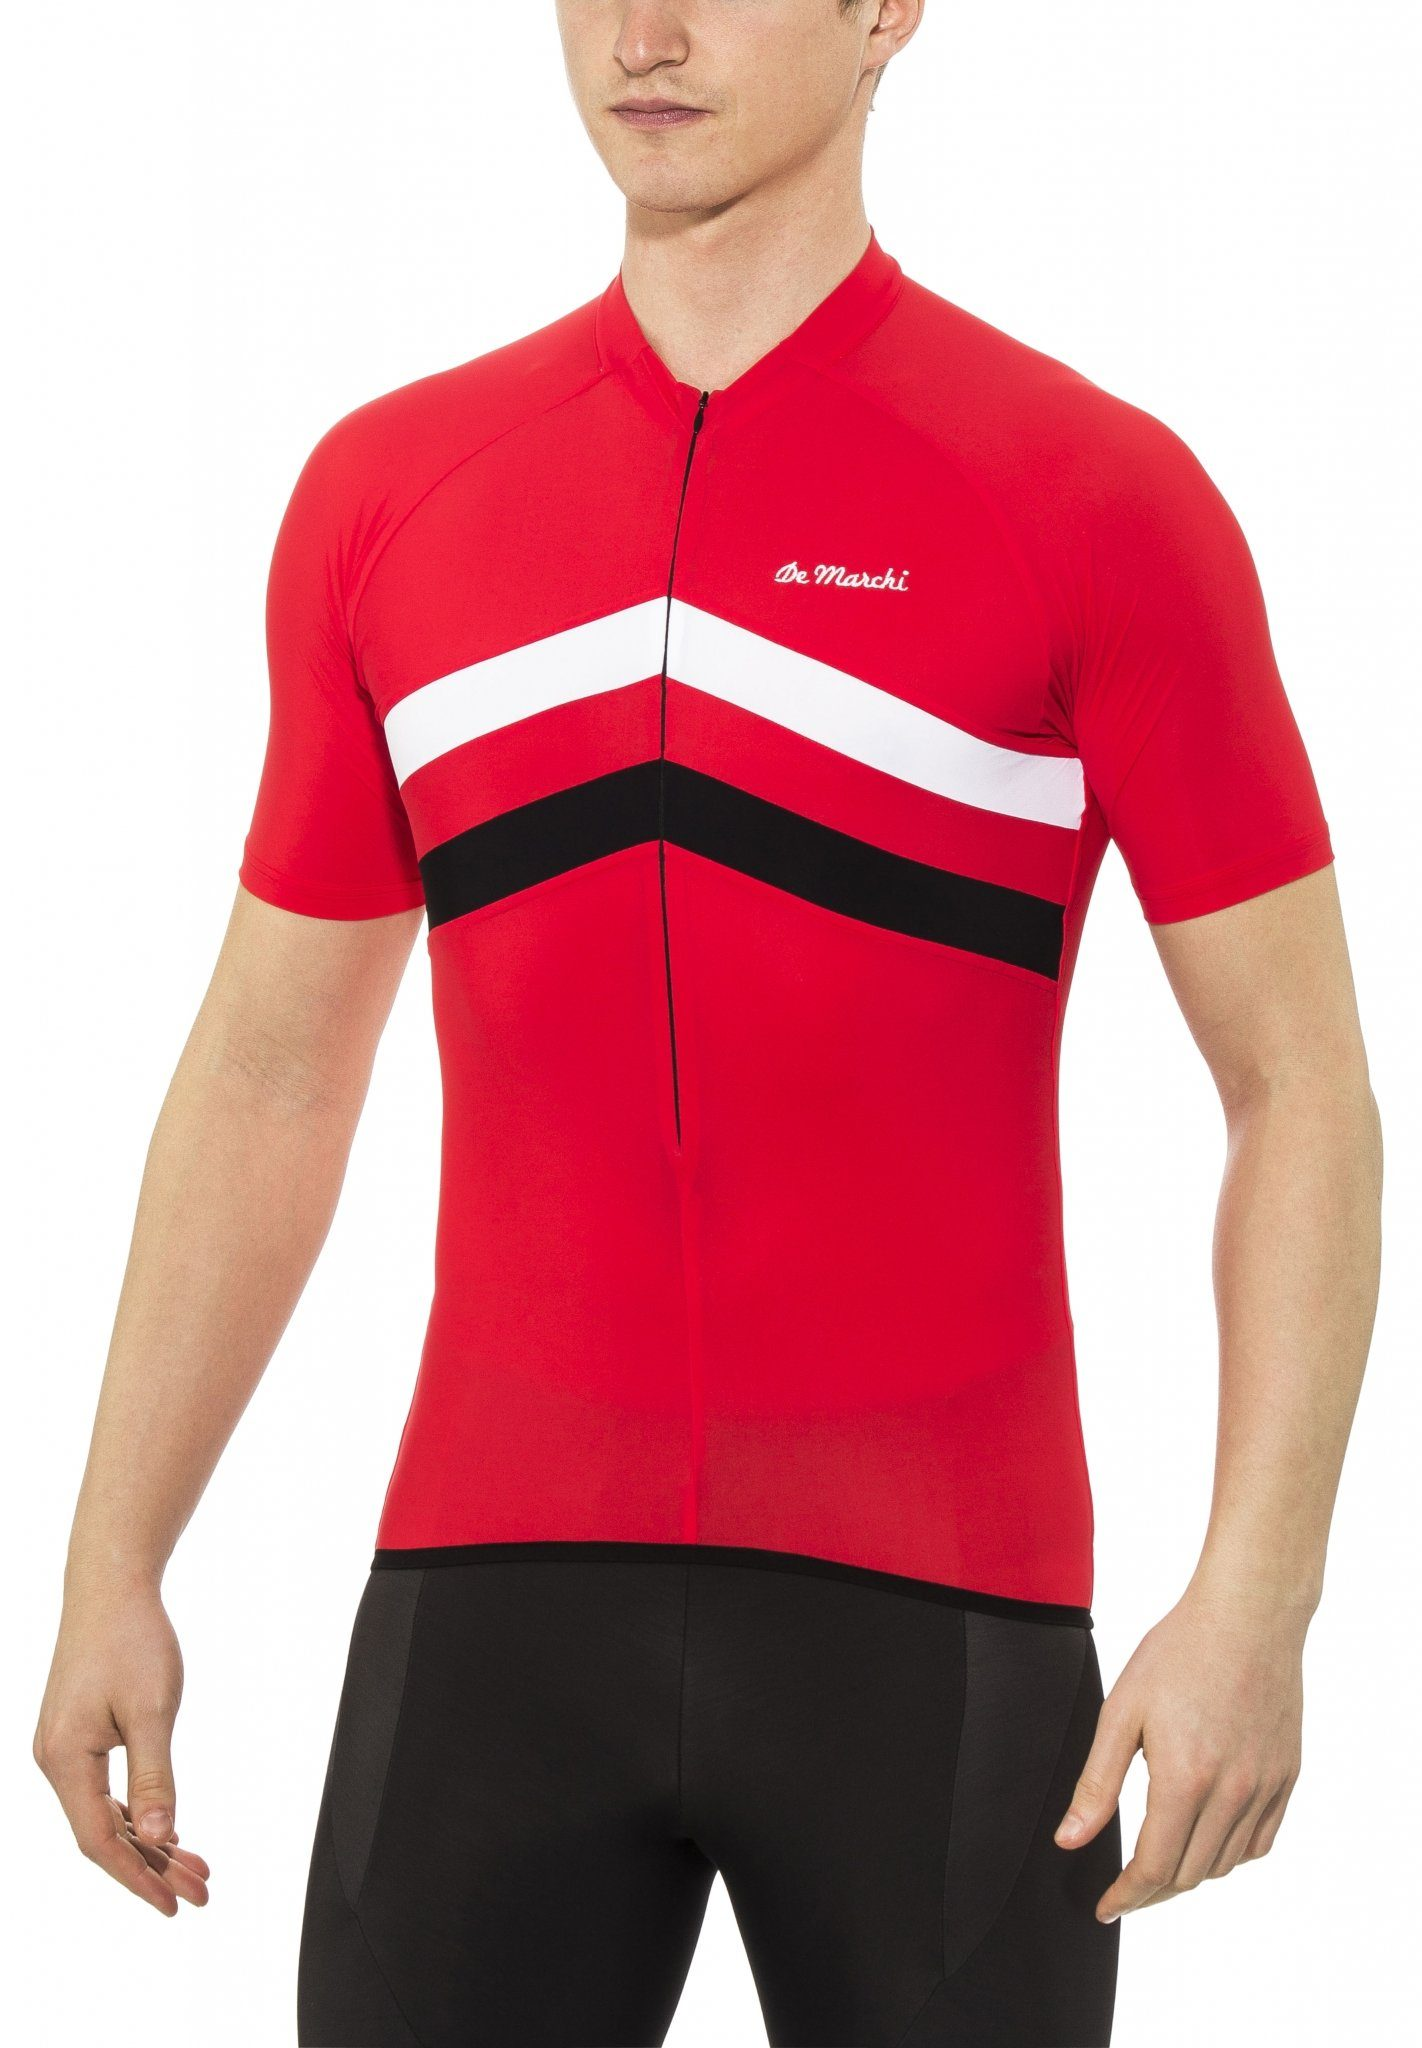 De Marchi Radtrikot »Superleggera Jersey Men«